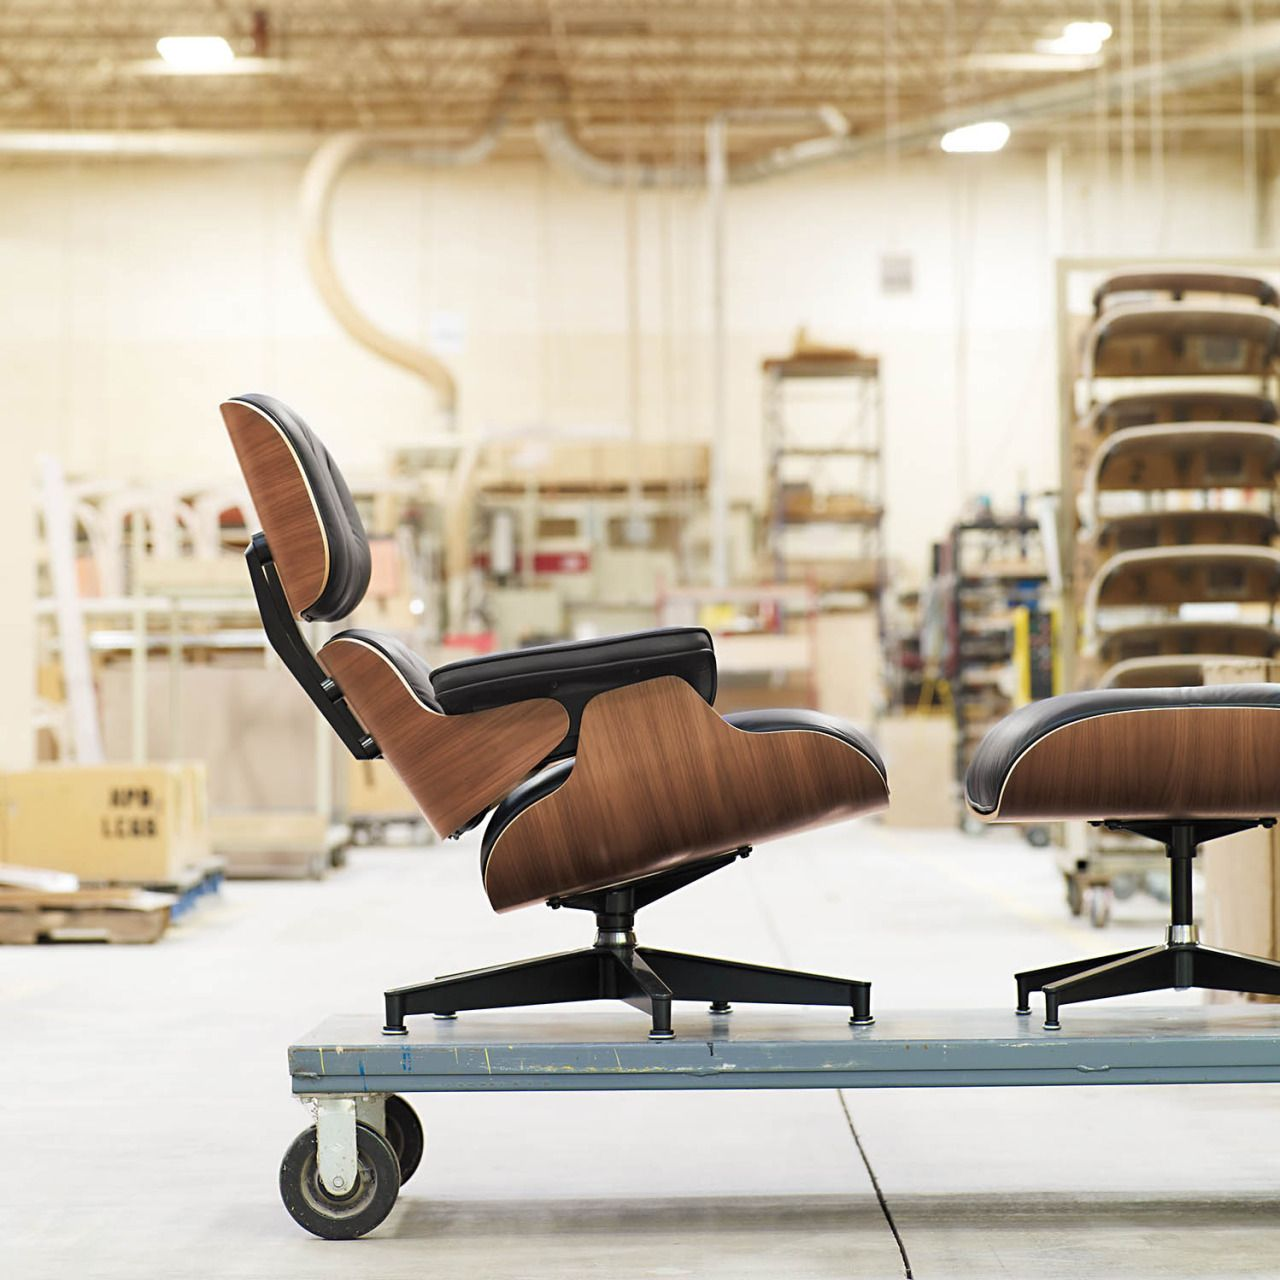 Brilliant Designwithinreach Topping Wish Lists For 58 Years The Alphanode Cool Chair Designs And Ideas Alphanodeonline